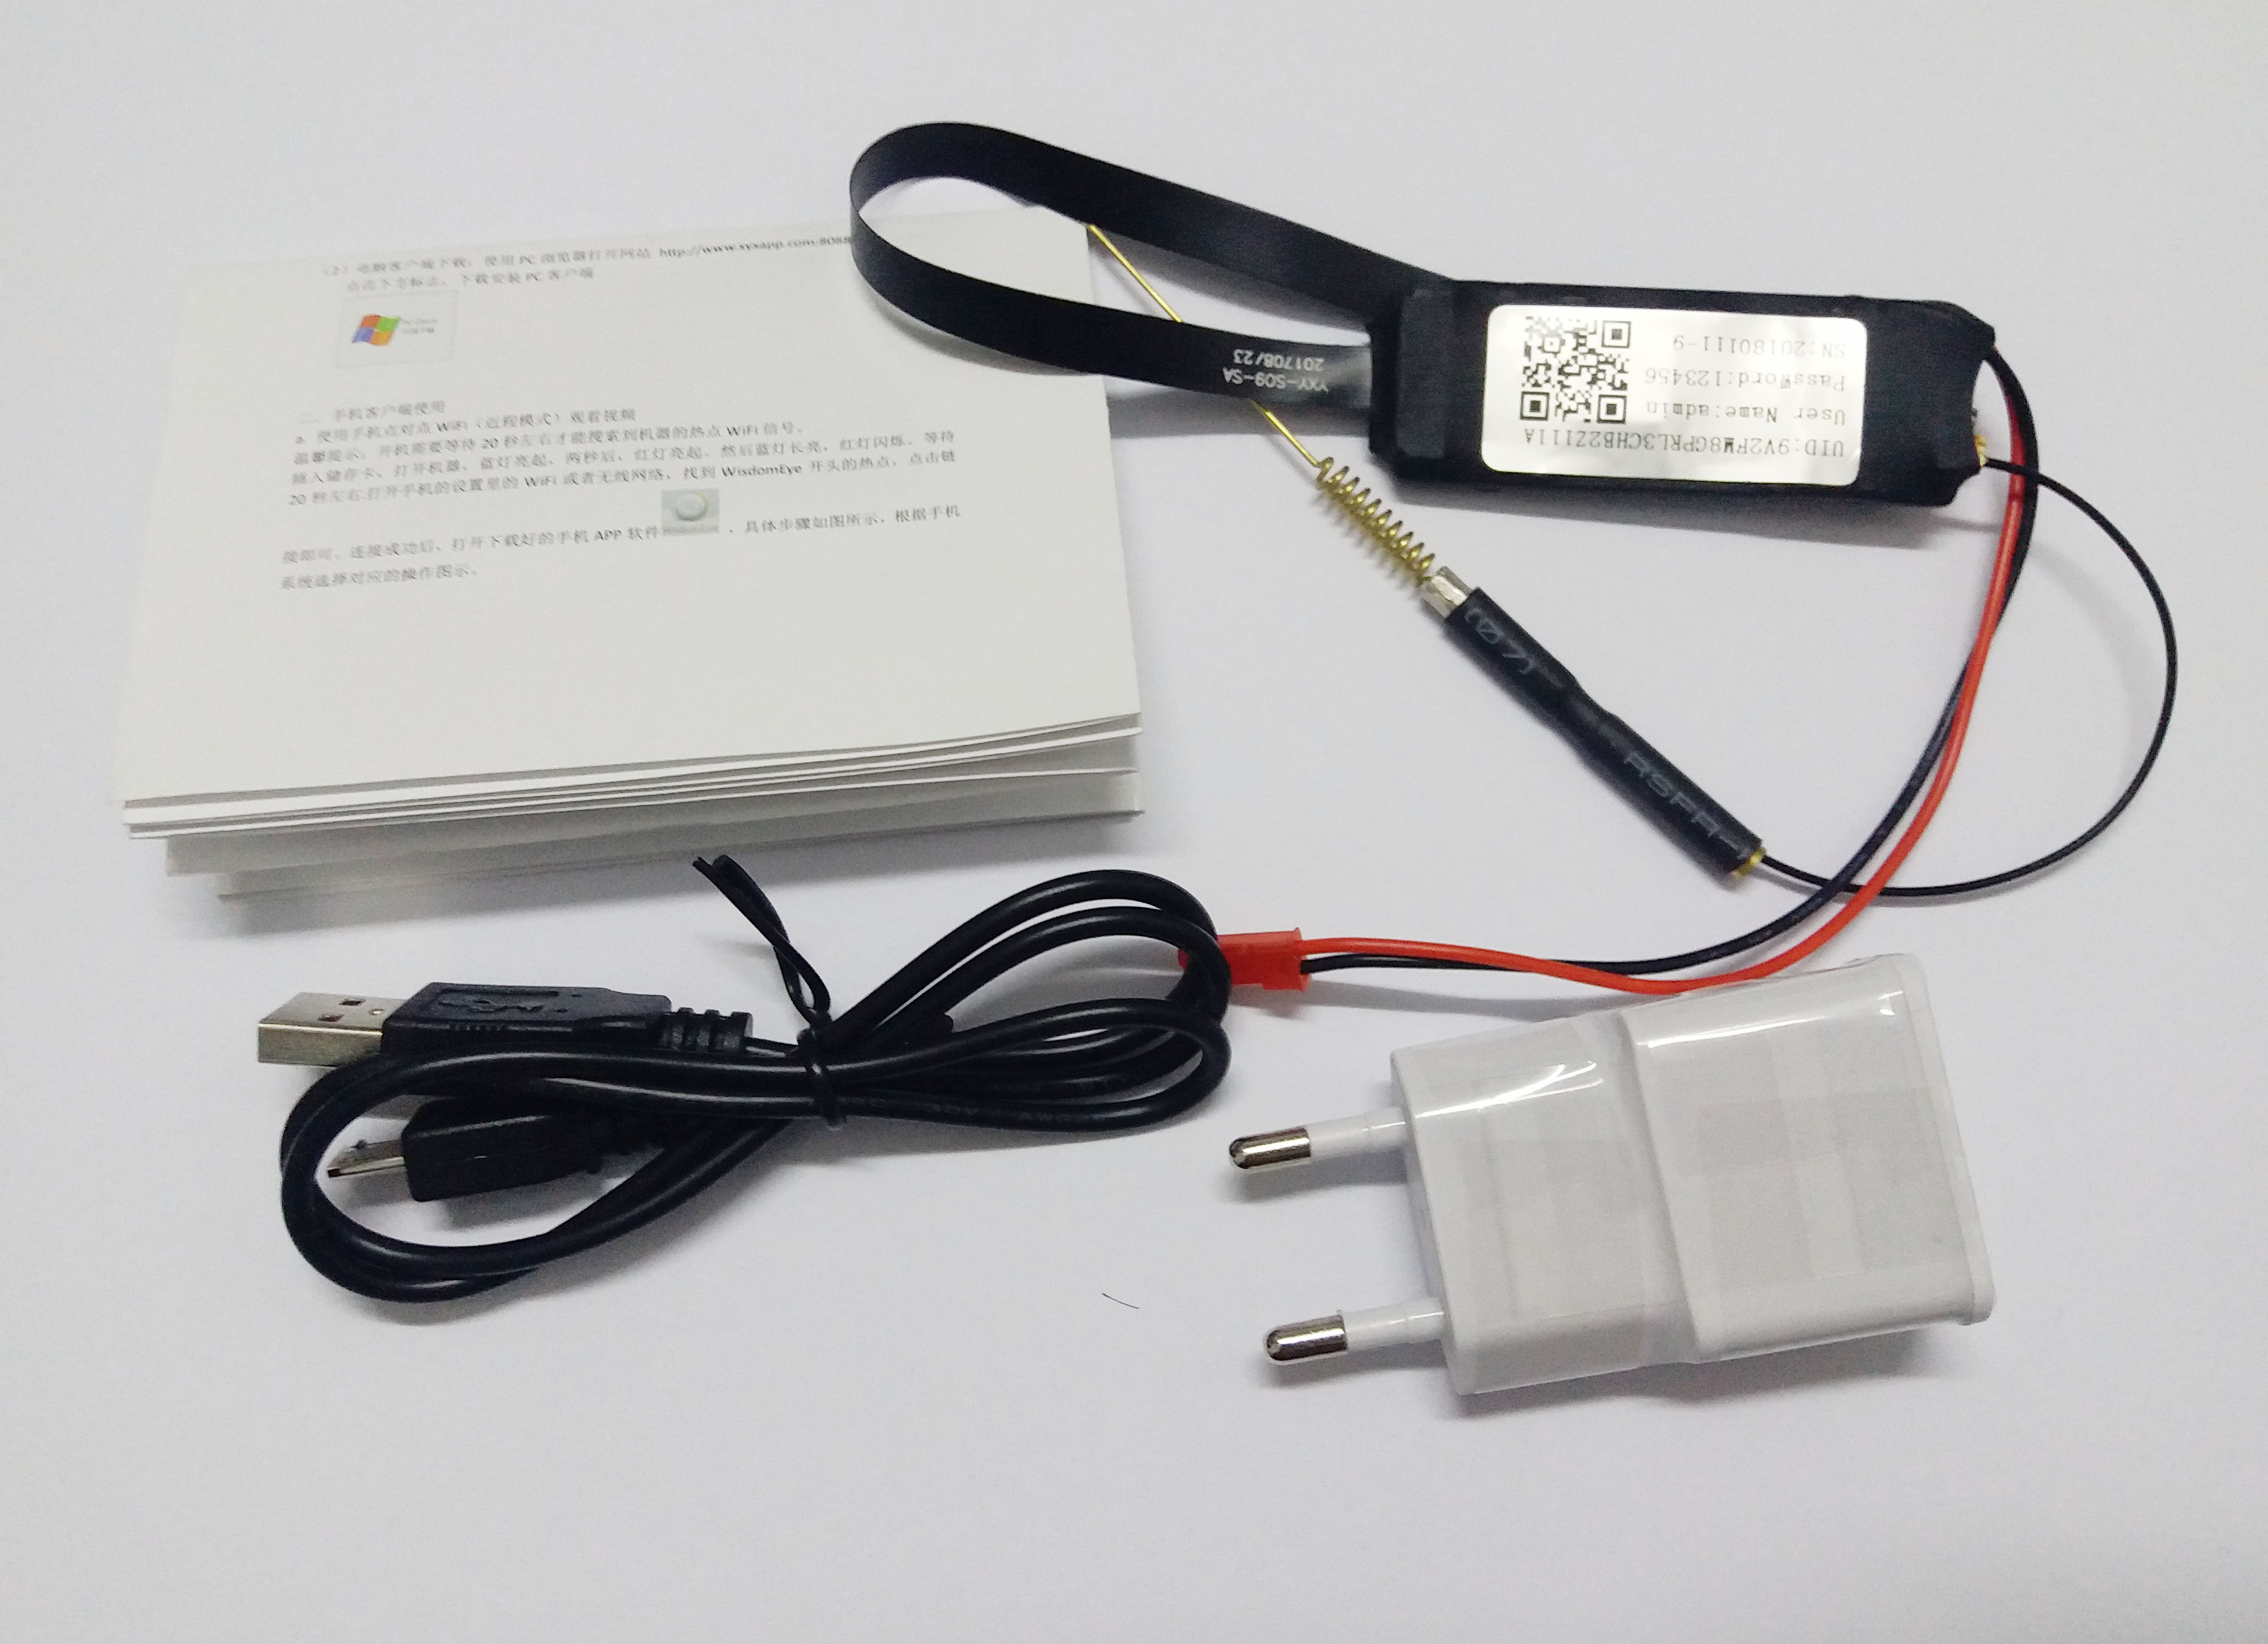 S06S WIFI Module Full Set CCTV Accesories 90 degree &amp; 140 degree &amp;  Night vision 90 degree - Without Battery <br>